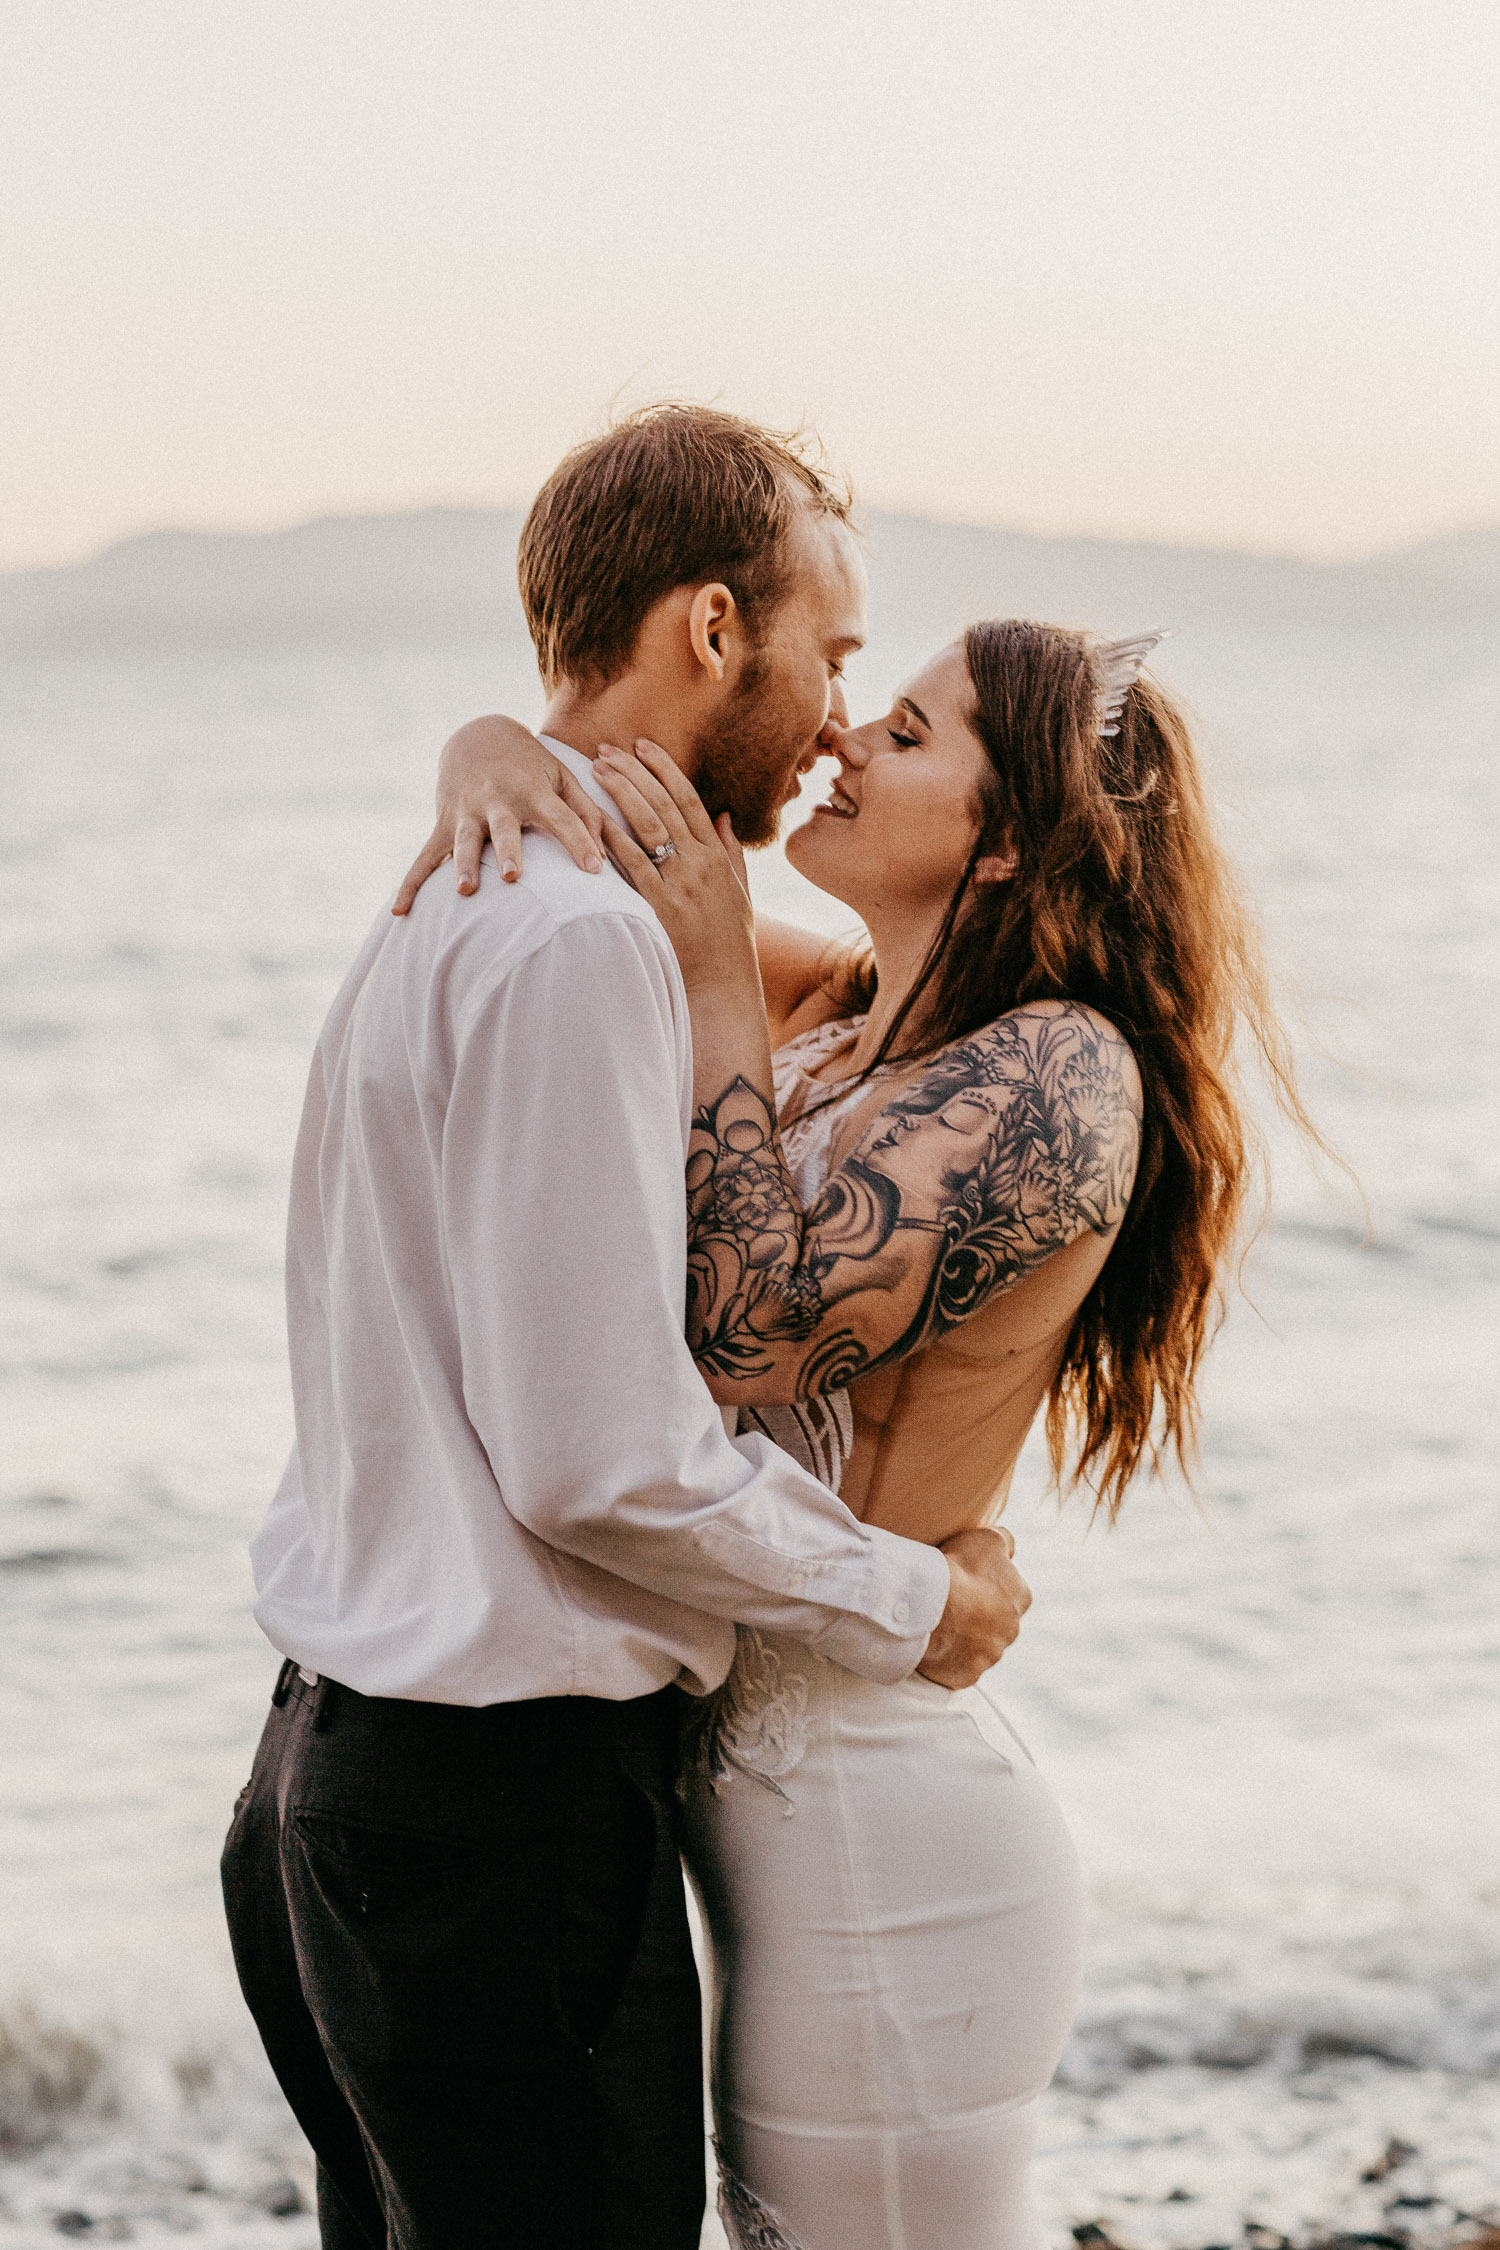 Image of groom holds bride and smile together next to water